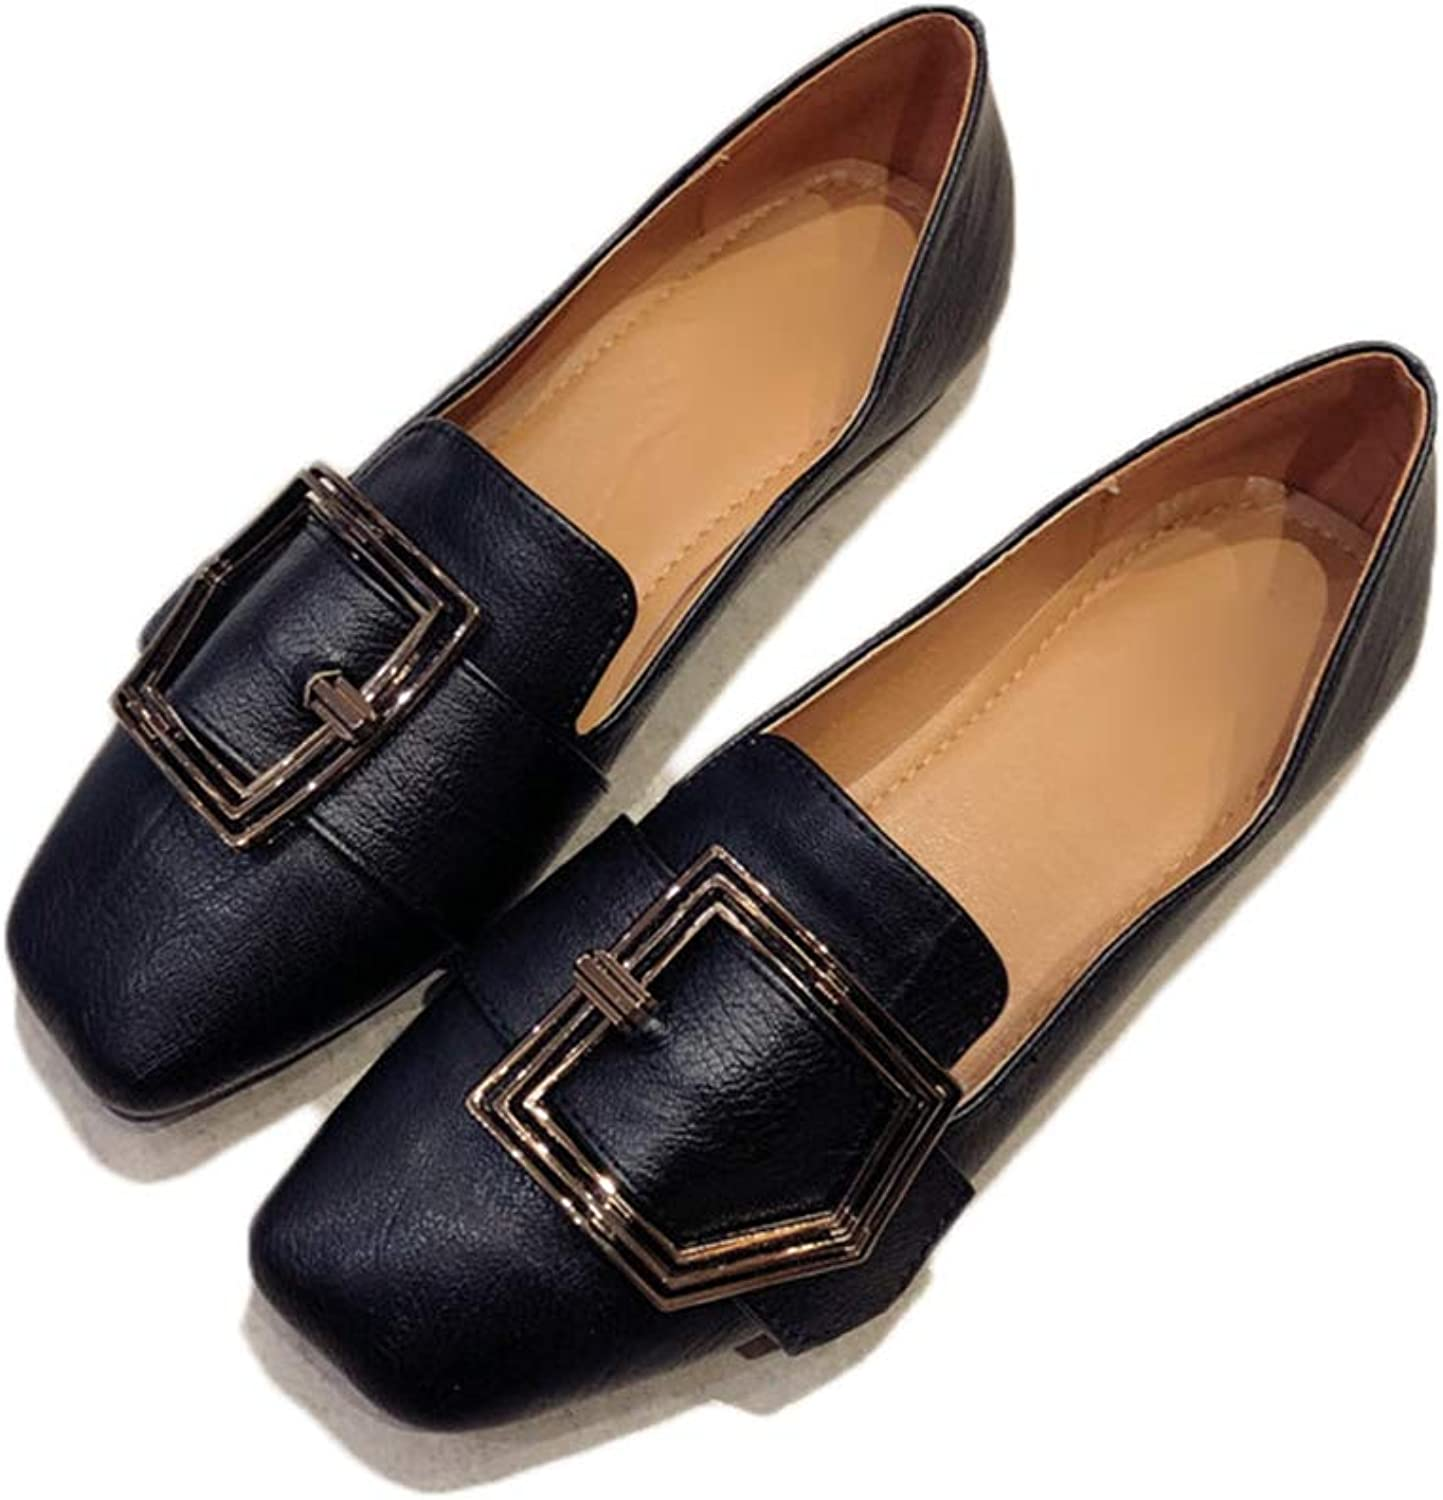 August Jim Womens Flat shoes,Buckle Slip On Loafer Casual Low Flats Square Toe shoes